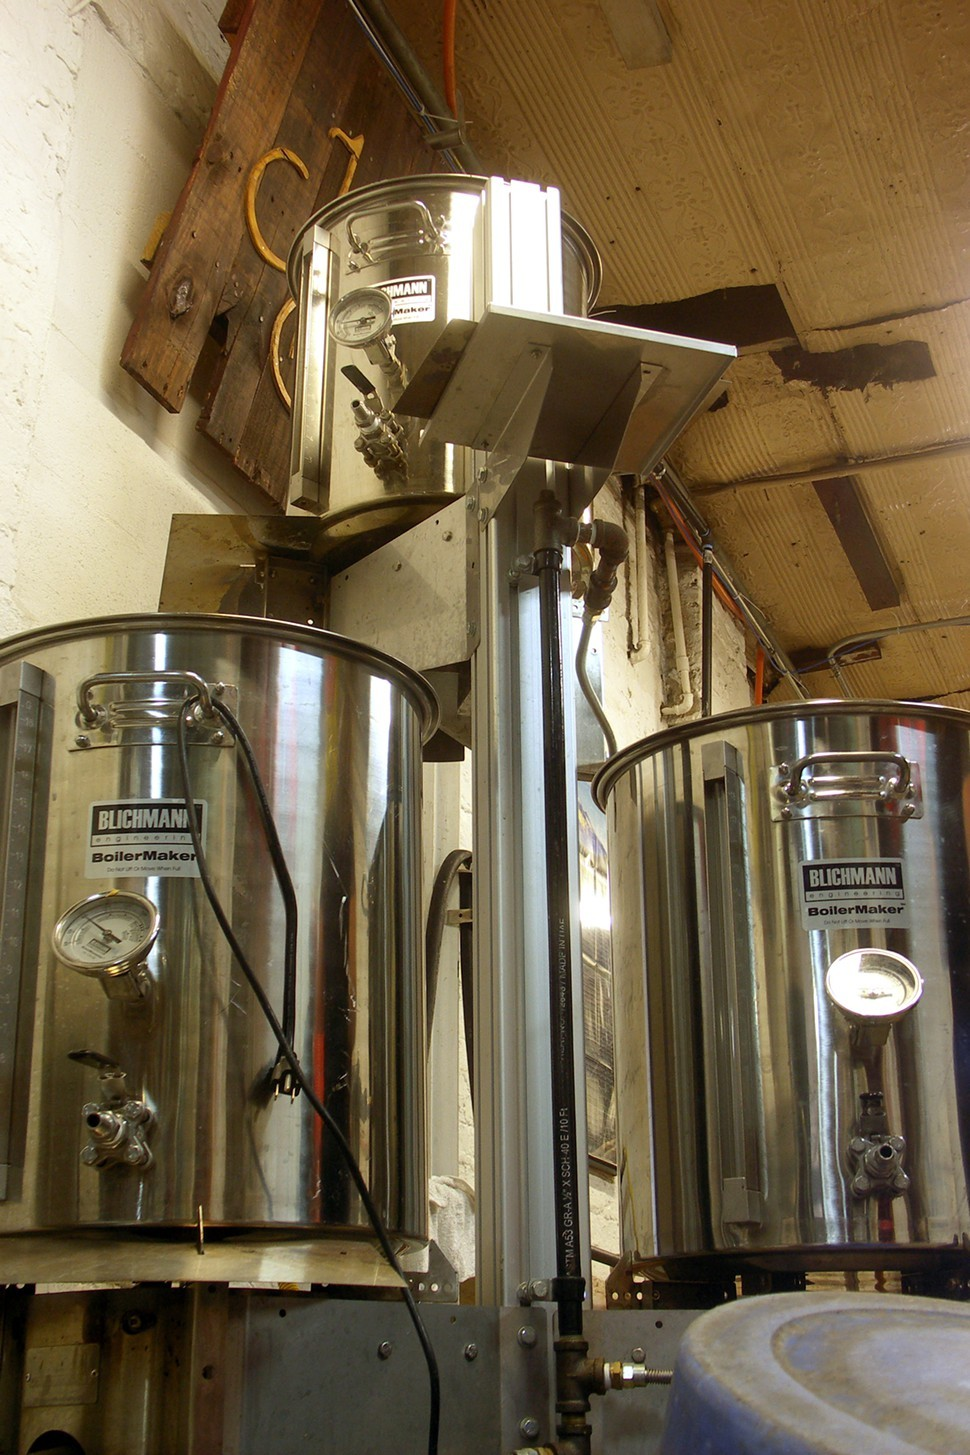 This Blichmann Tower of Power (its actual name) is on loan from Tim Lange, one of two head brewers at Marz.